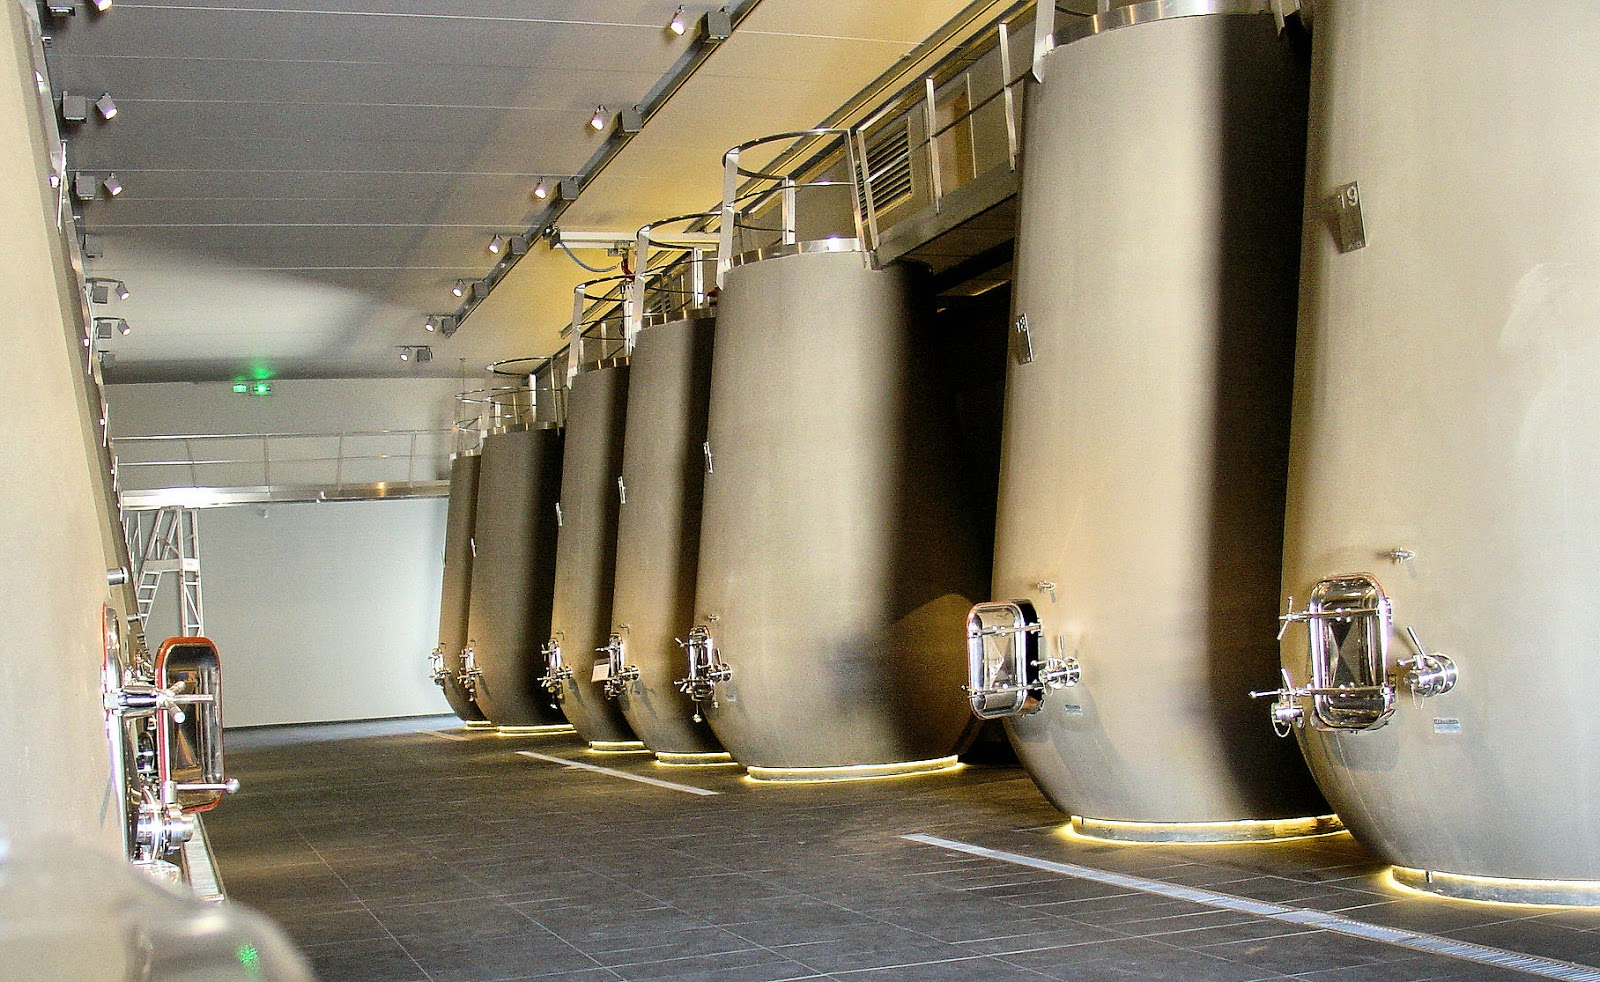 100-hectoliter concrete vats line both sides of the room at the chateau. Each contains 2,642 gallons of wine!